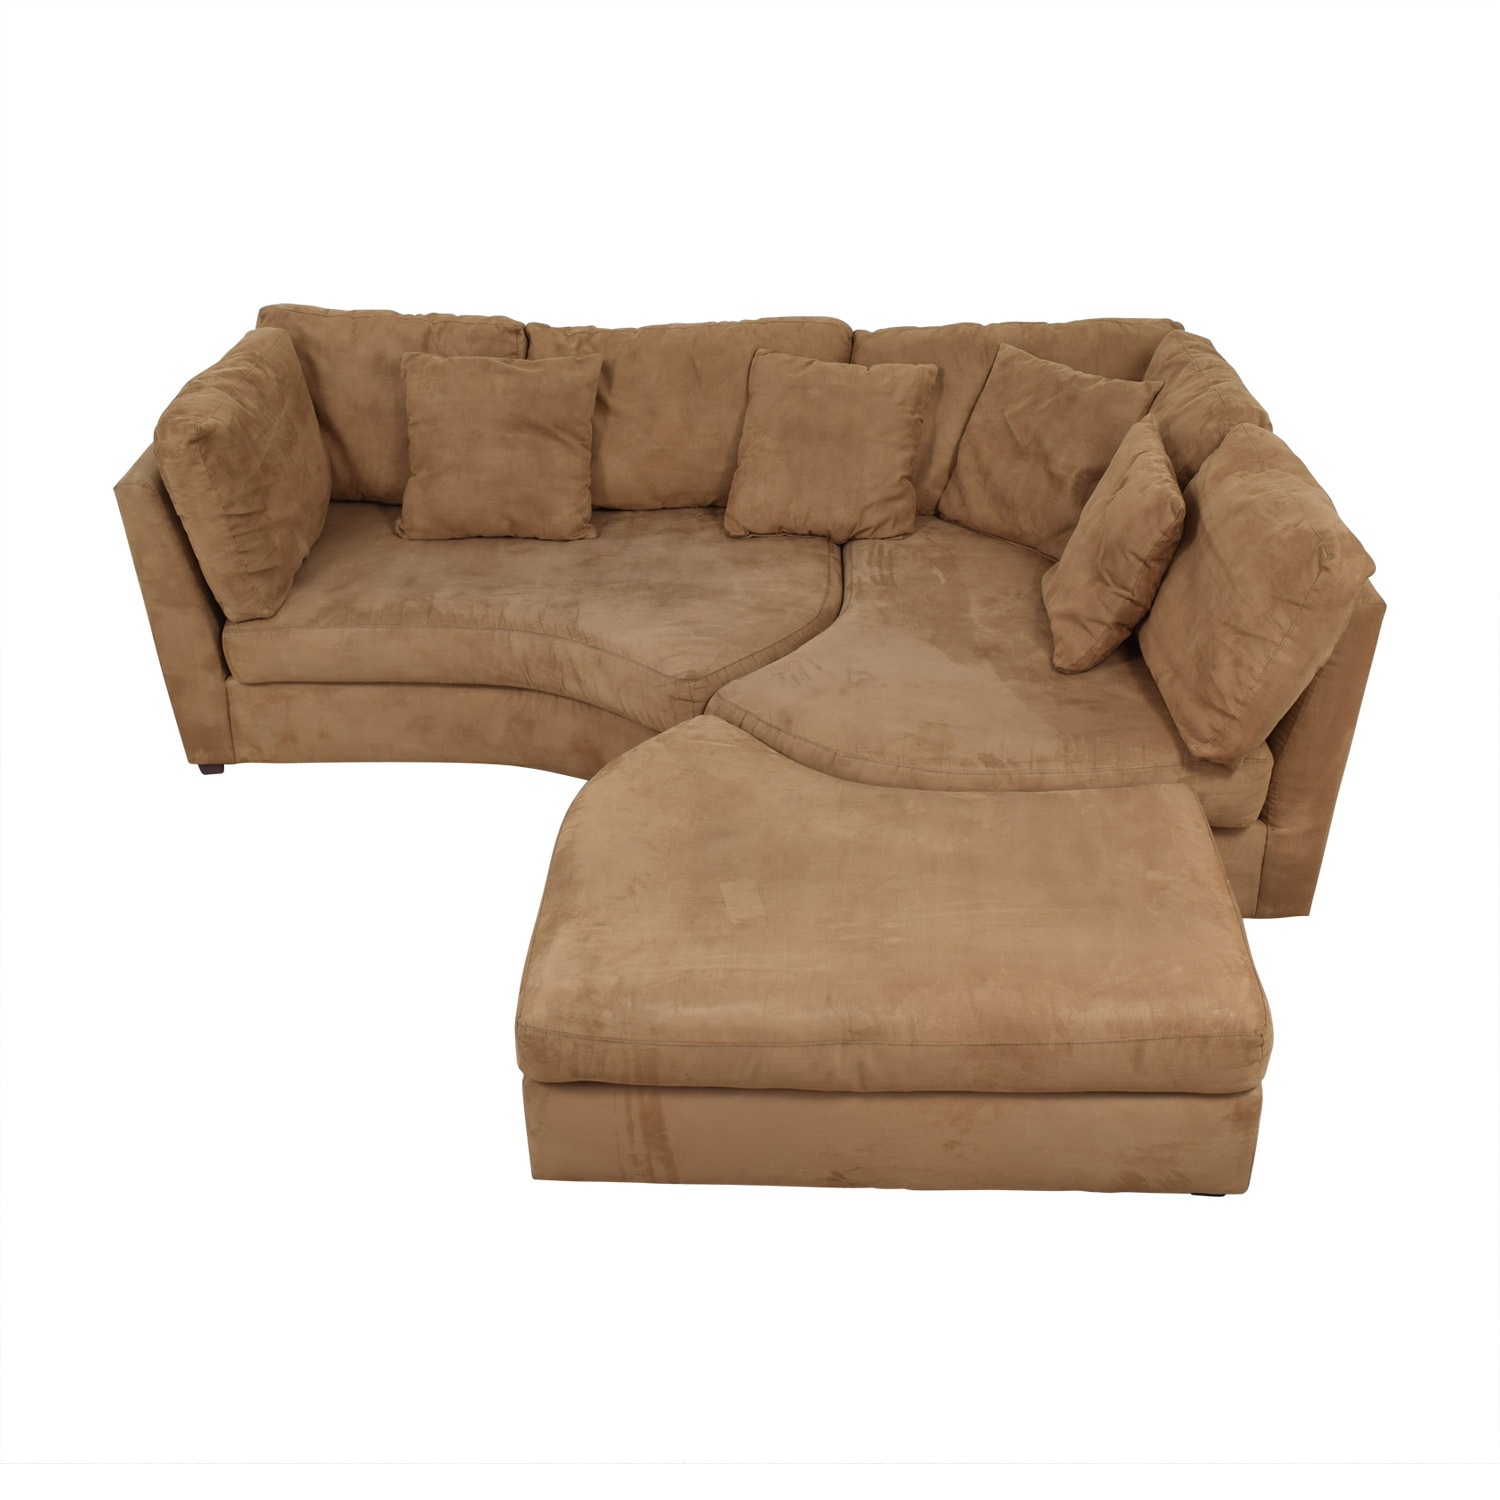 Raymour & Flanigan Raymour & Flanigan Sectional Sofa with Ottoman Sofas